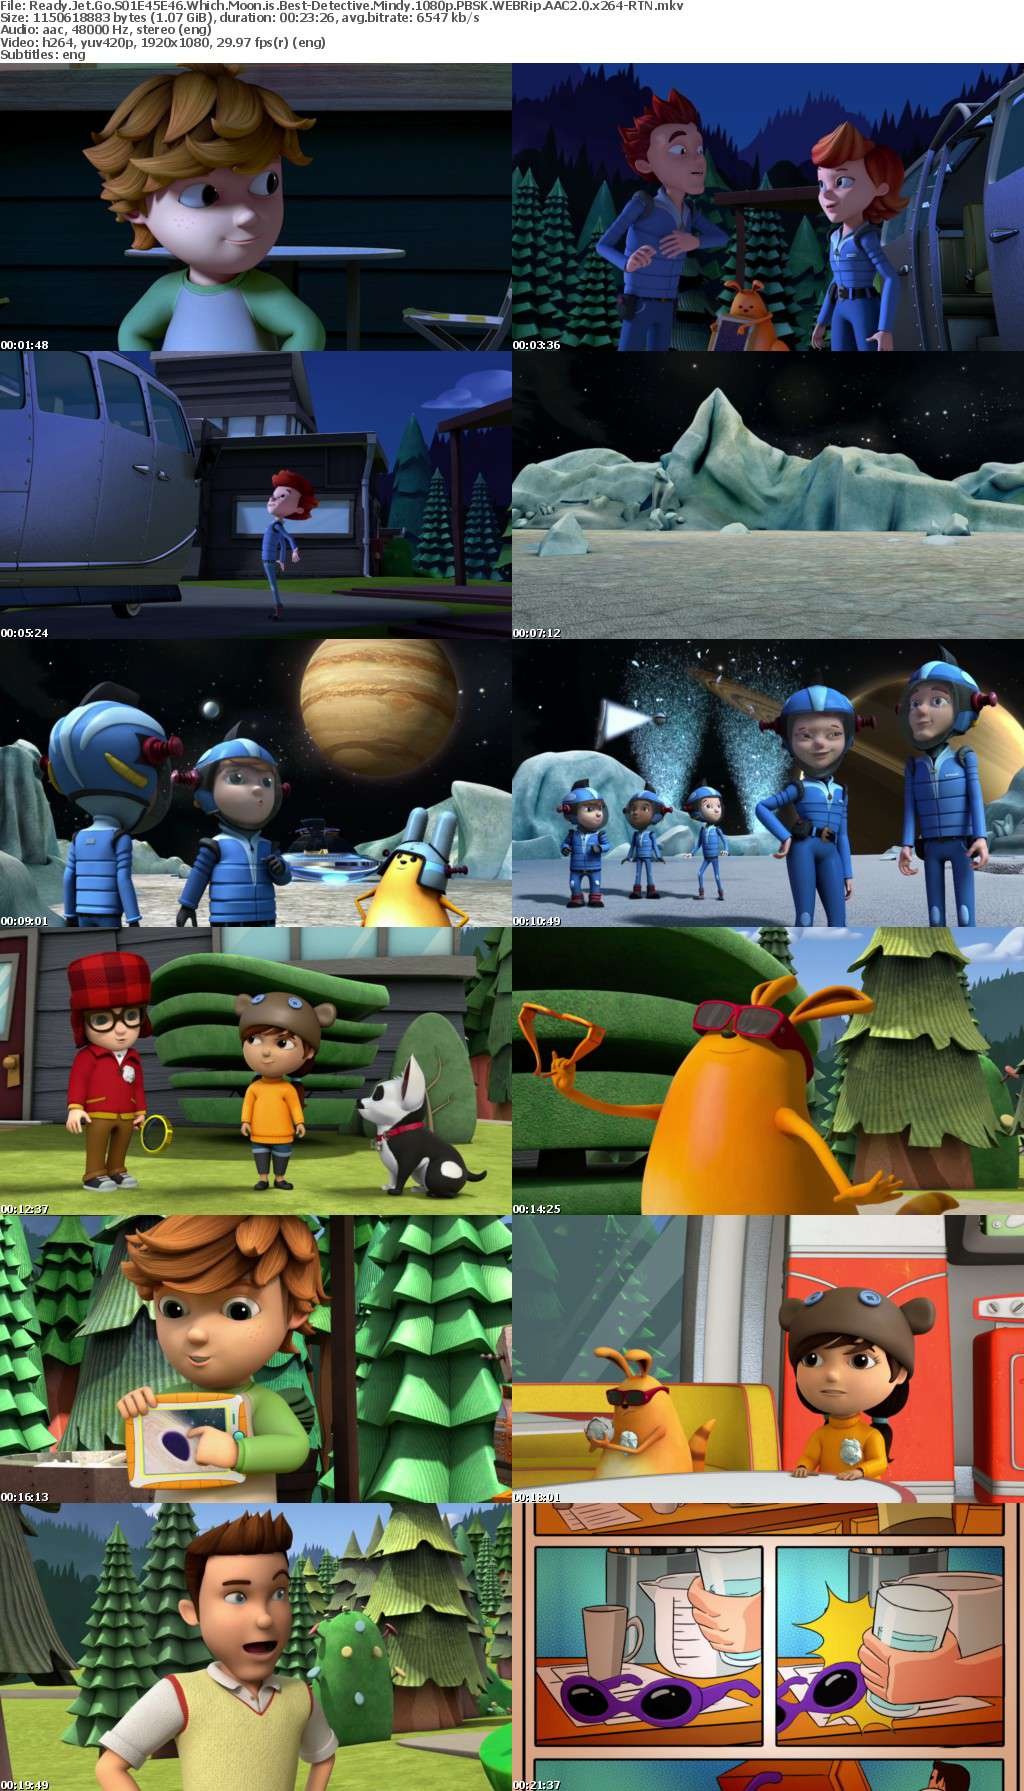 Ready Jet Go S01E45E46 Which Moon is Best-Detective Mindy 1080p PBSK WEBRip AAC2 0 x264-RTN